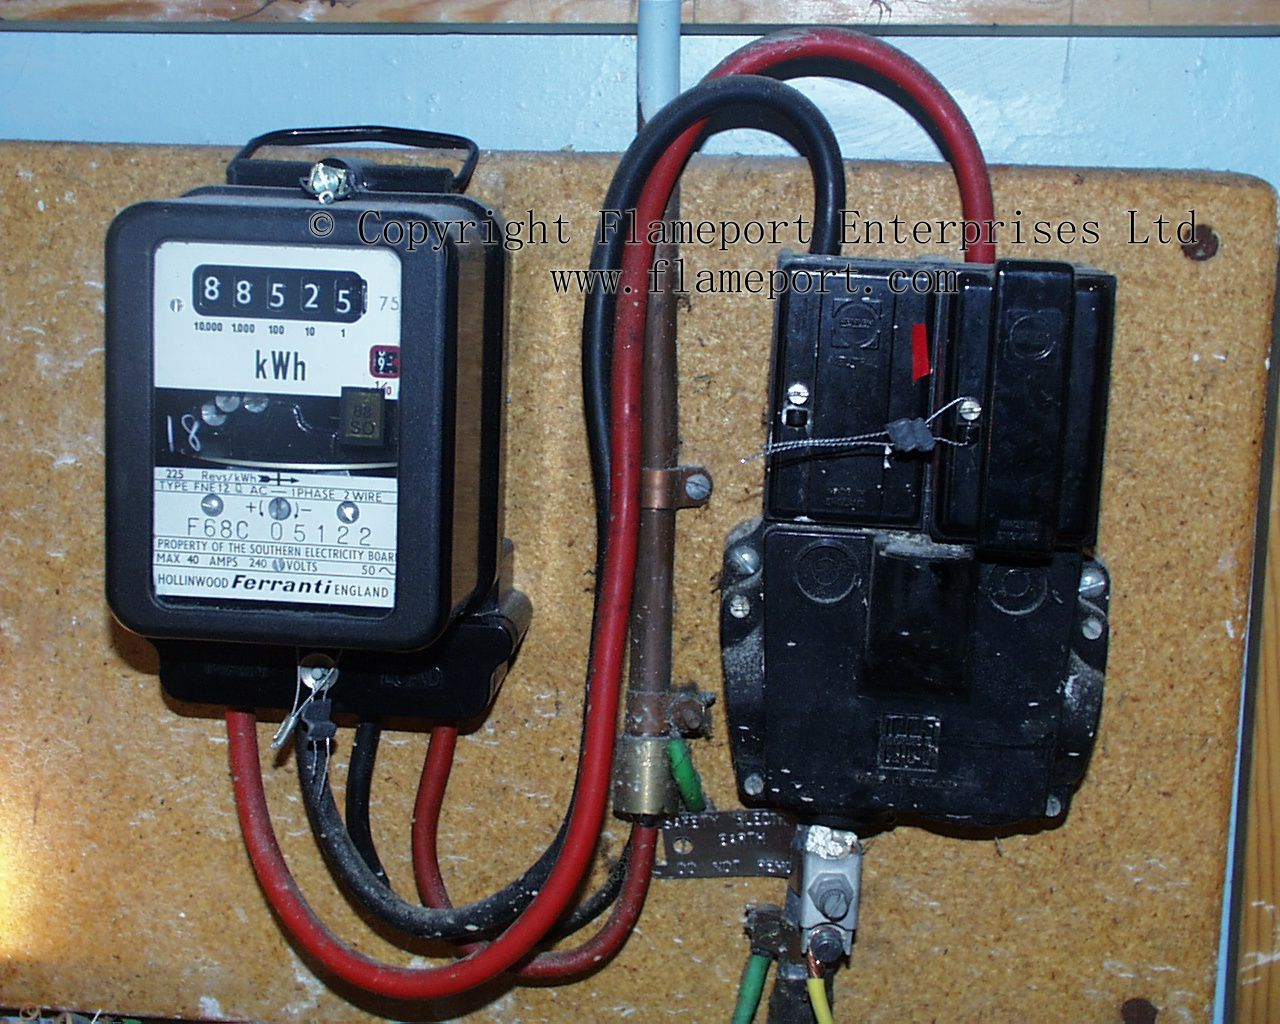 hight resolution of old electrical fuse box inside a warehouse ferranti electricity meter and supplier cutout